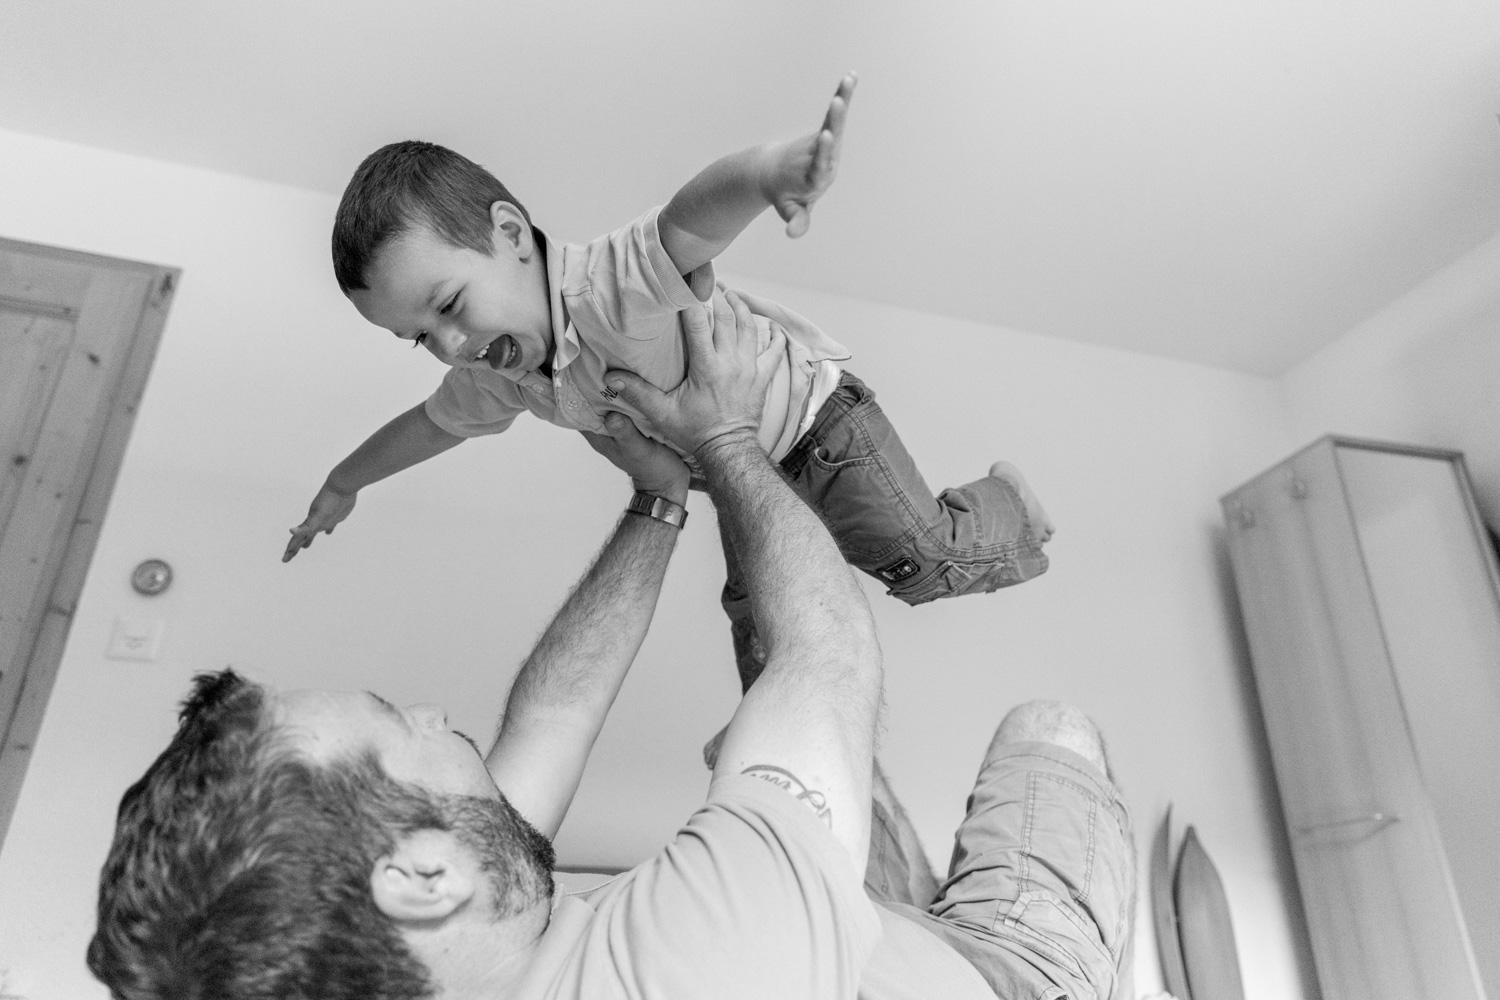 calgary family photography playful fun with son and dad